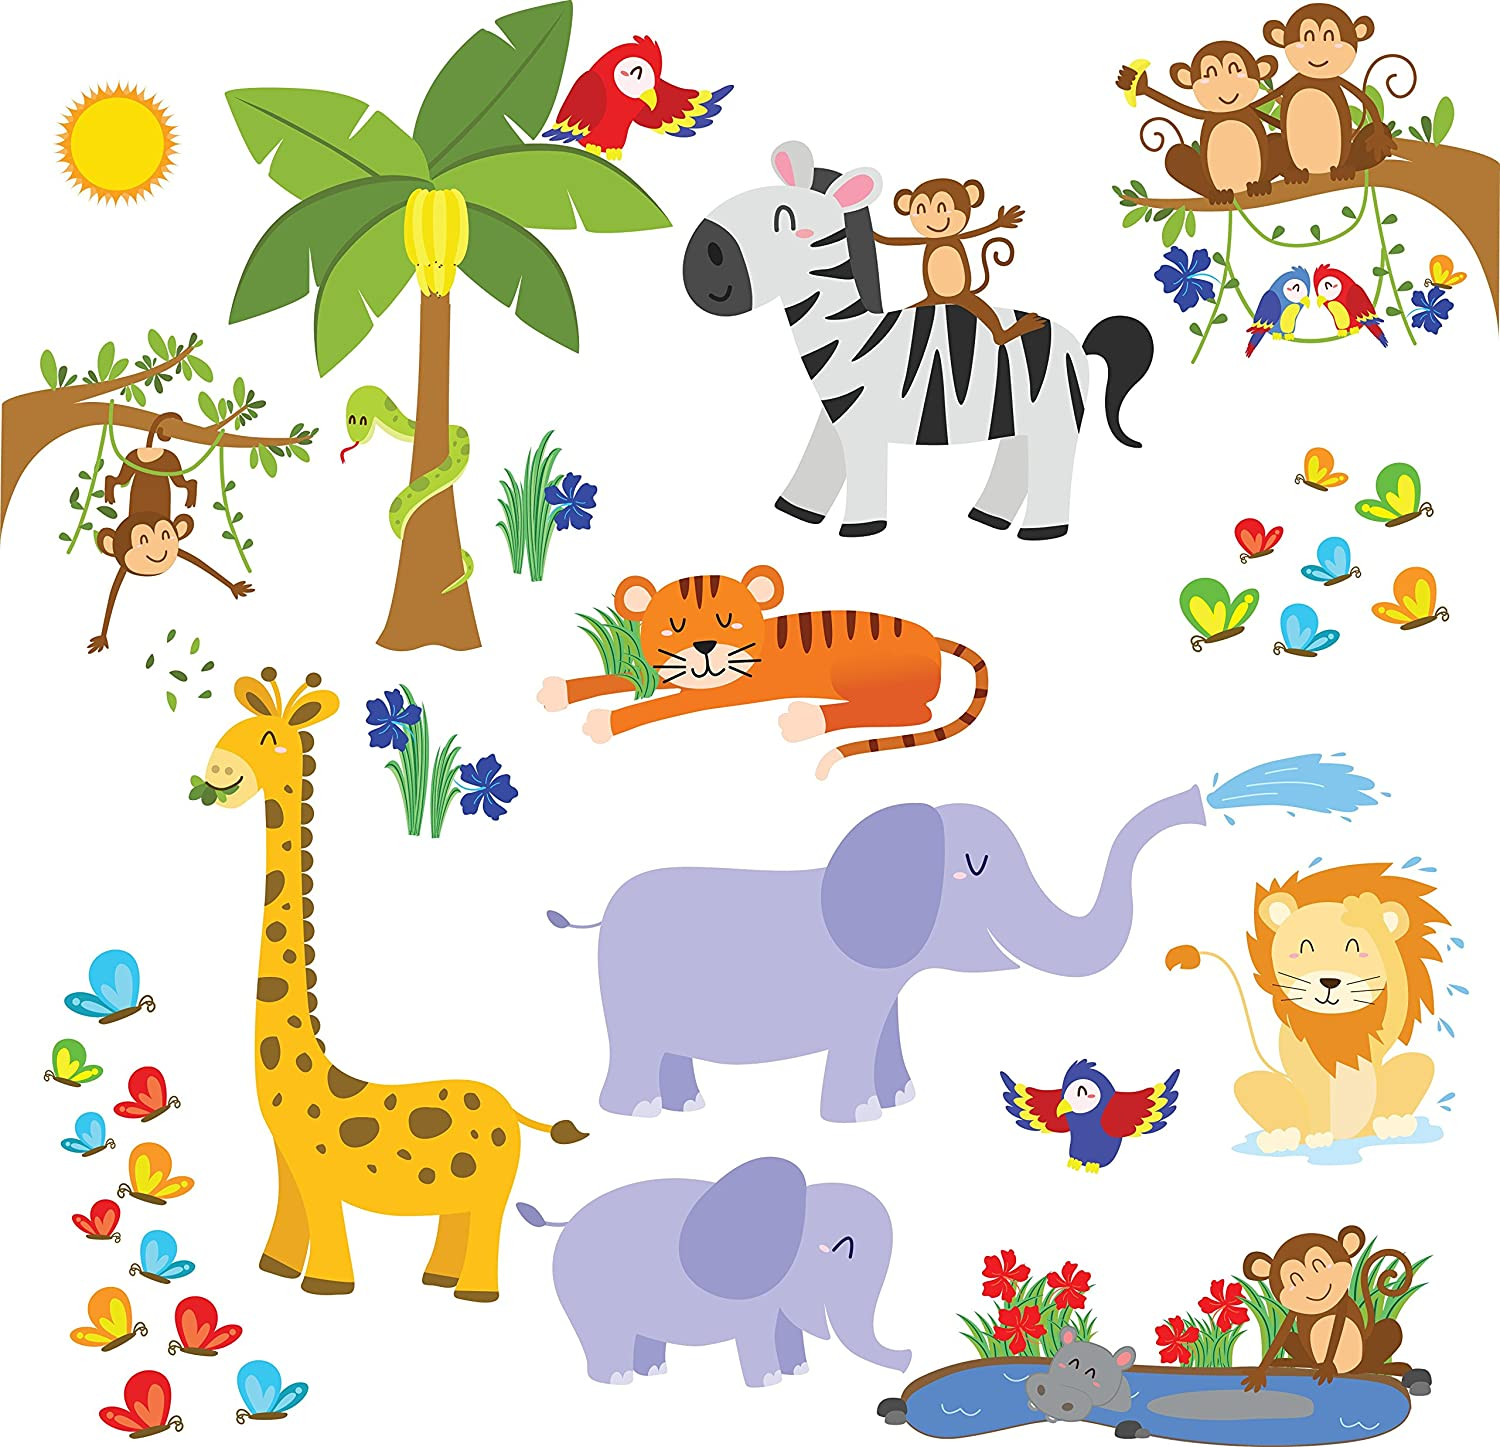 1d71dd0cd66b treepenguin Kids Jungle Animals Wall Decals - Cute Safari Theme Wall  Stickers for Baby Toddler Boys & Girls Rooms - Peel and Stick Bedroom and  Nursery Decor